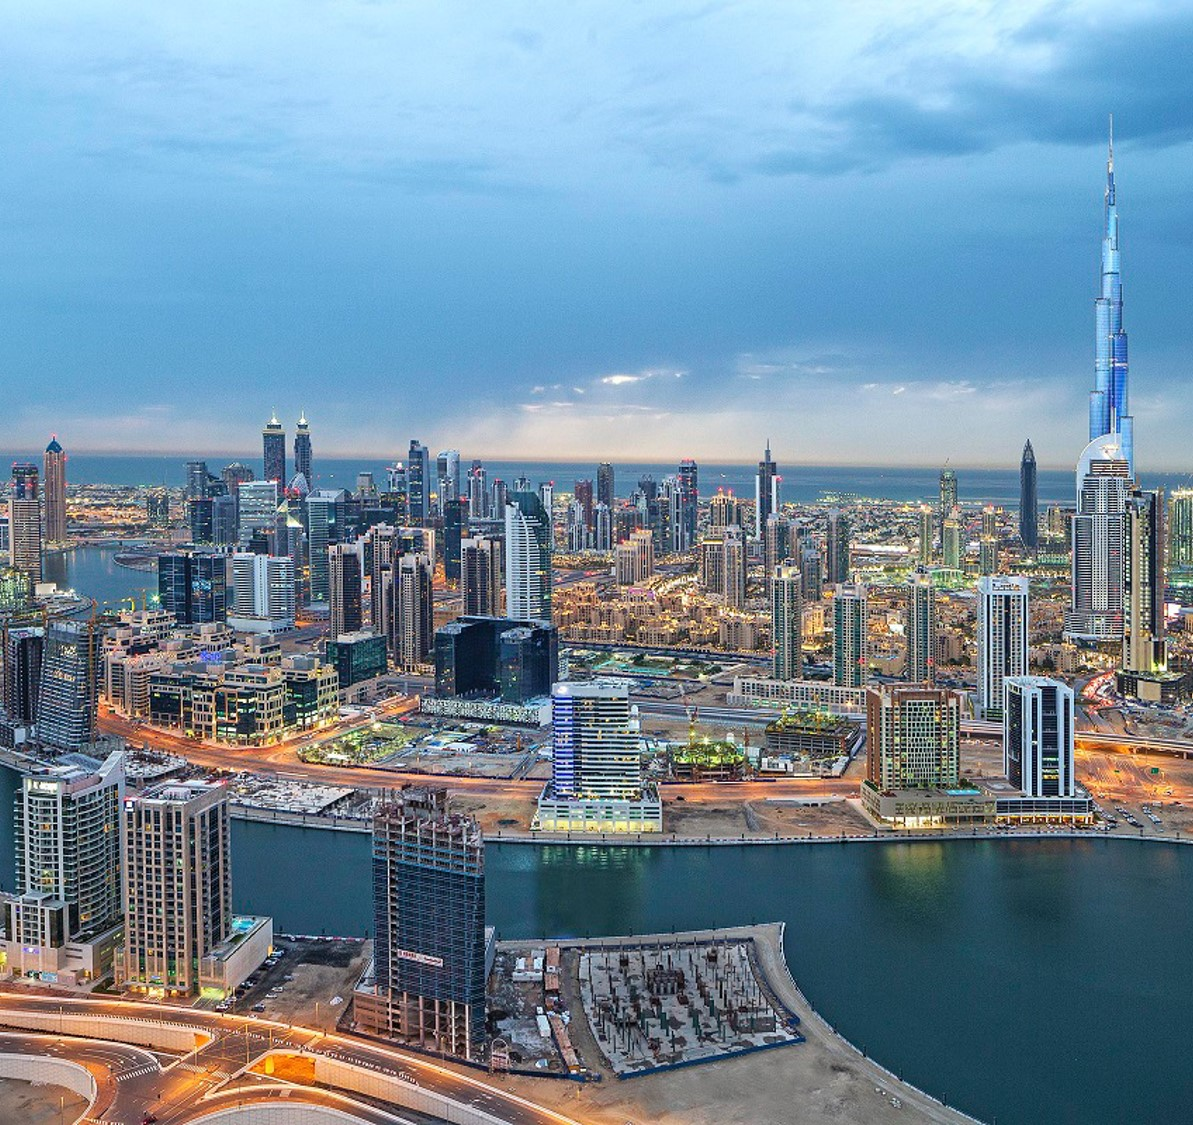 Systematica-Dubai Business Bay-Aerial View